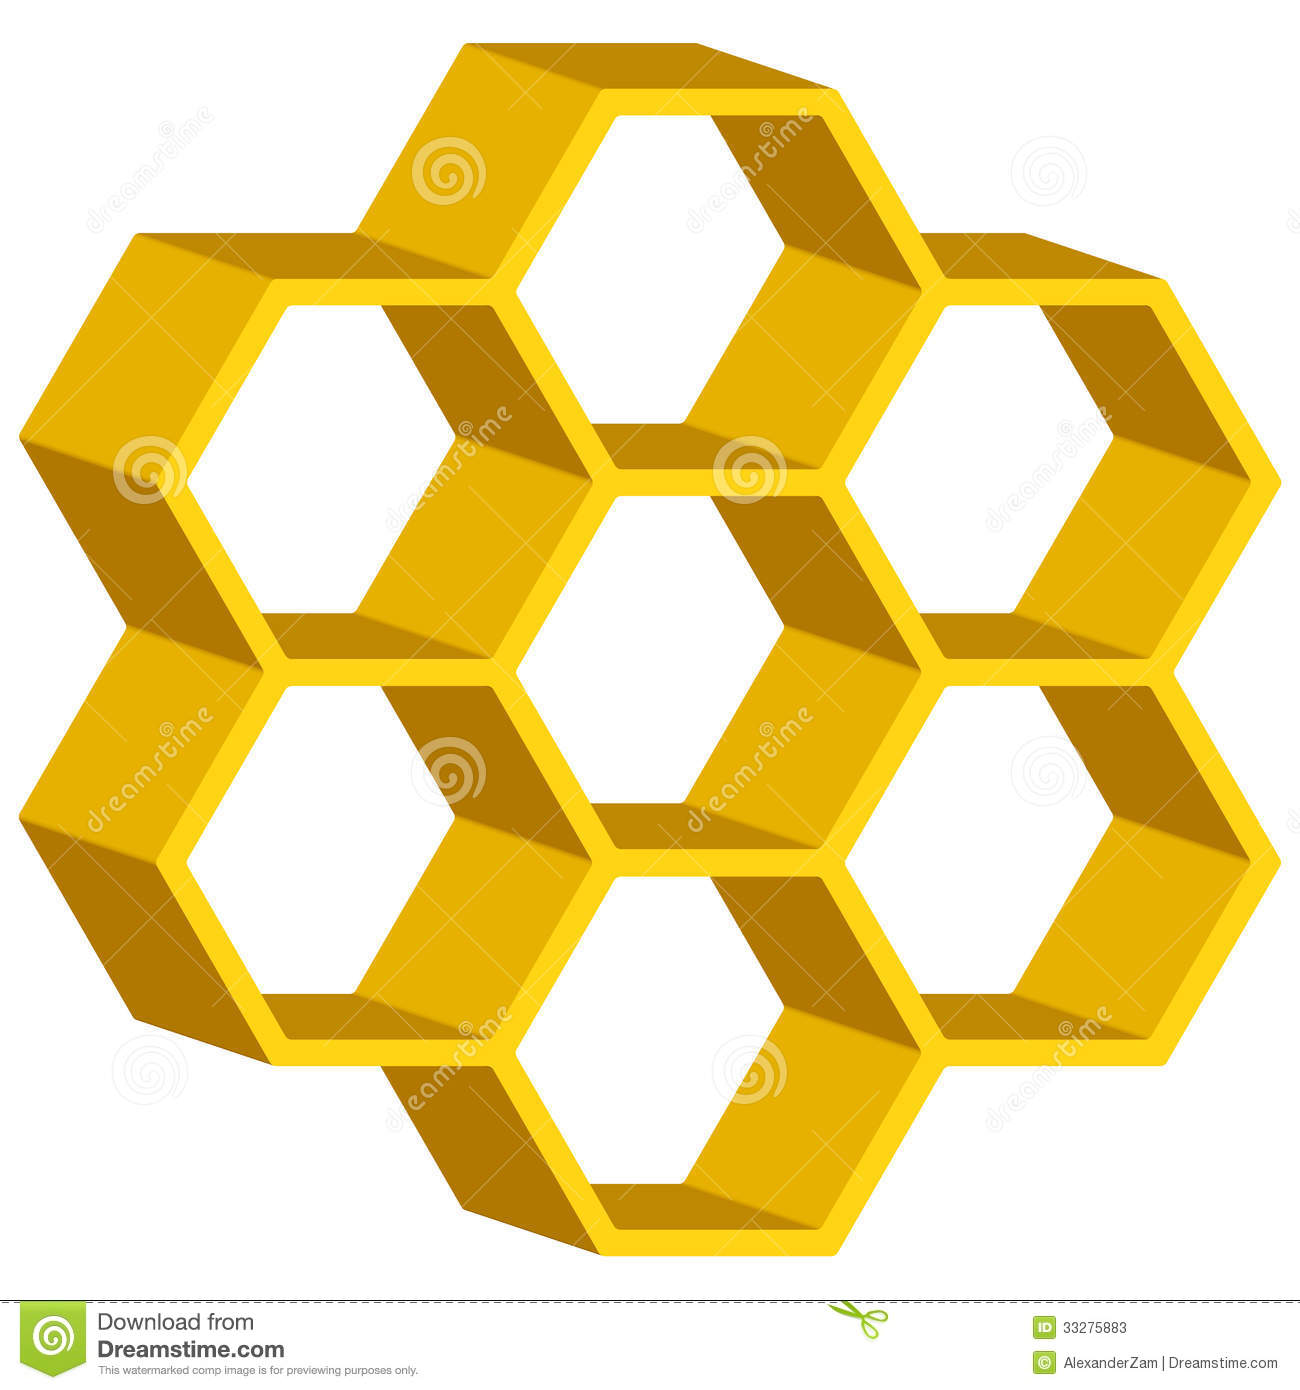 Honeycomb Graphic Design Honeycomb symbol for various